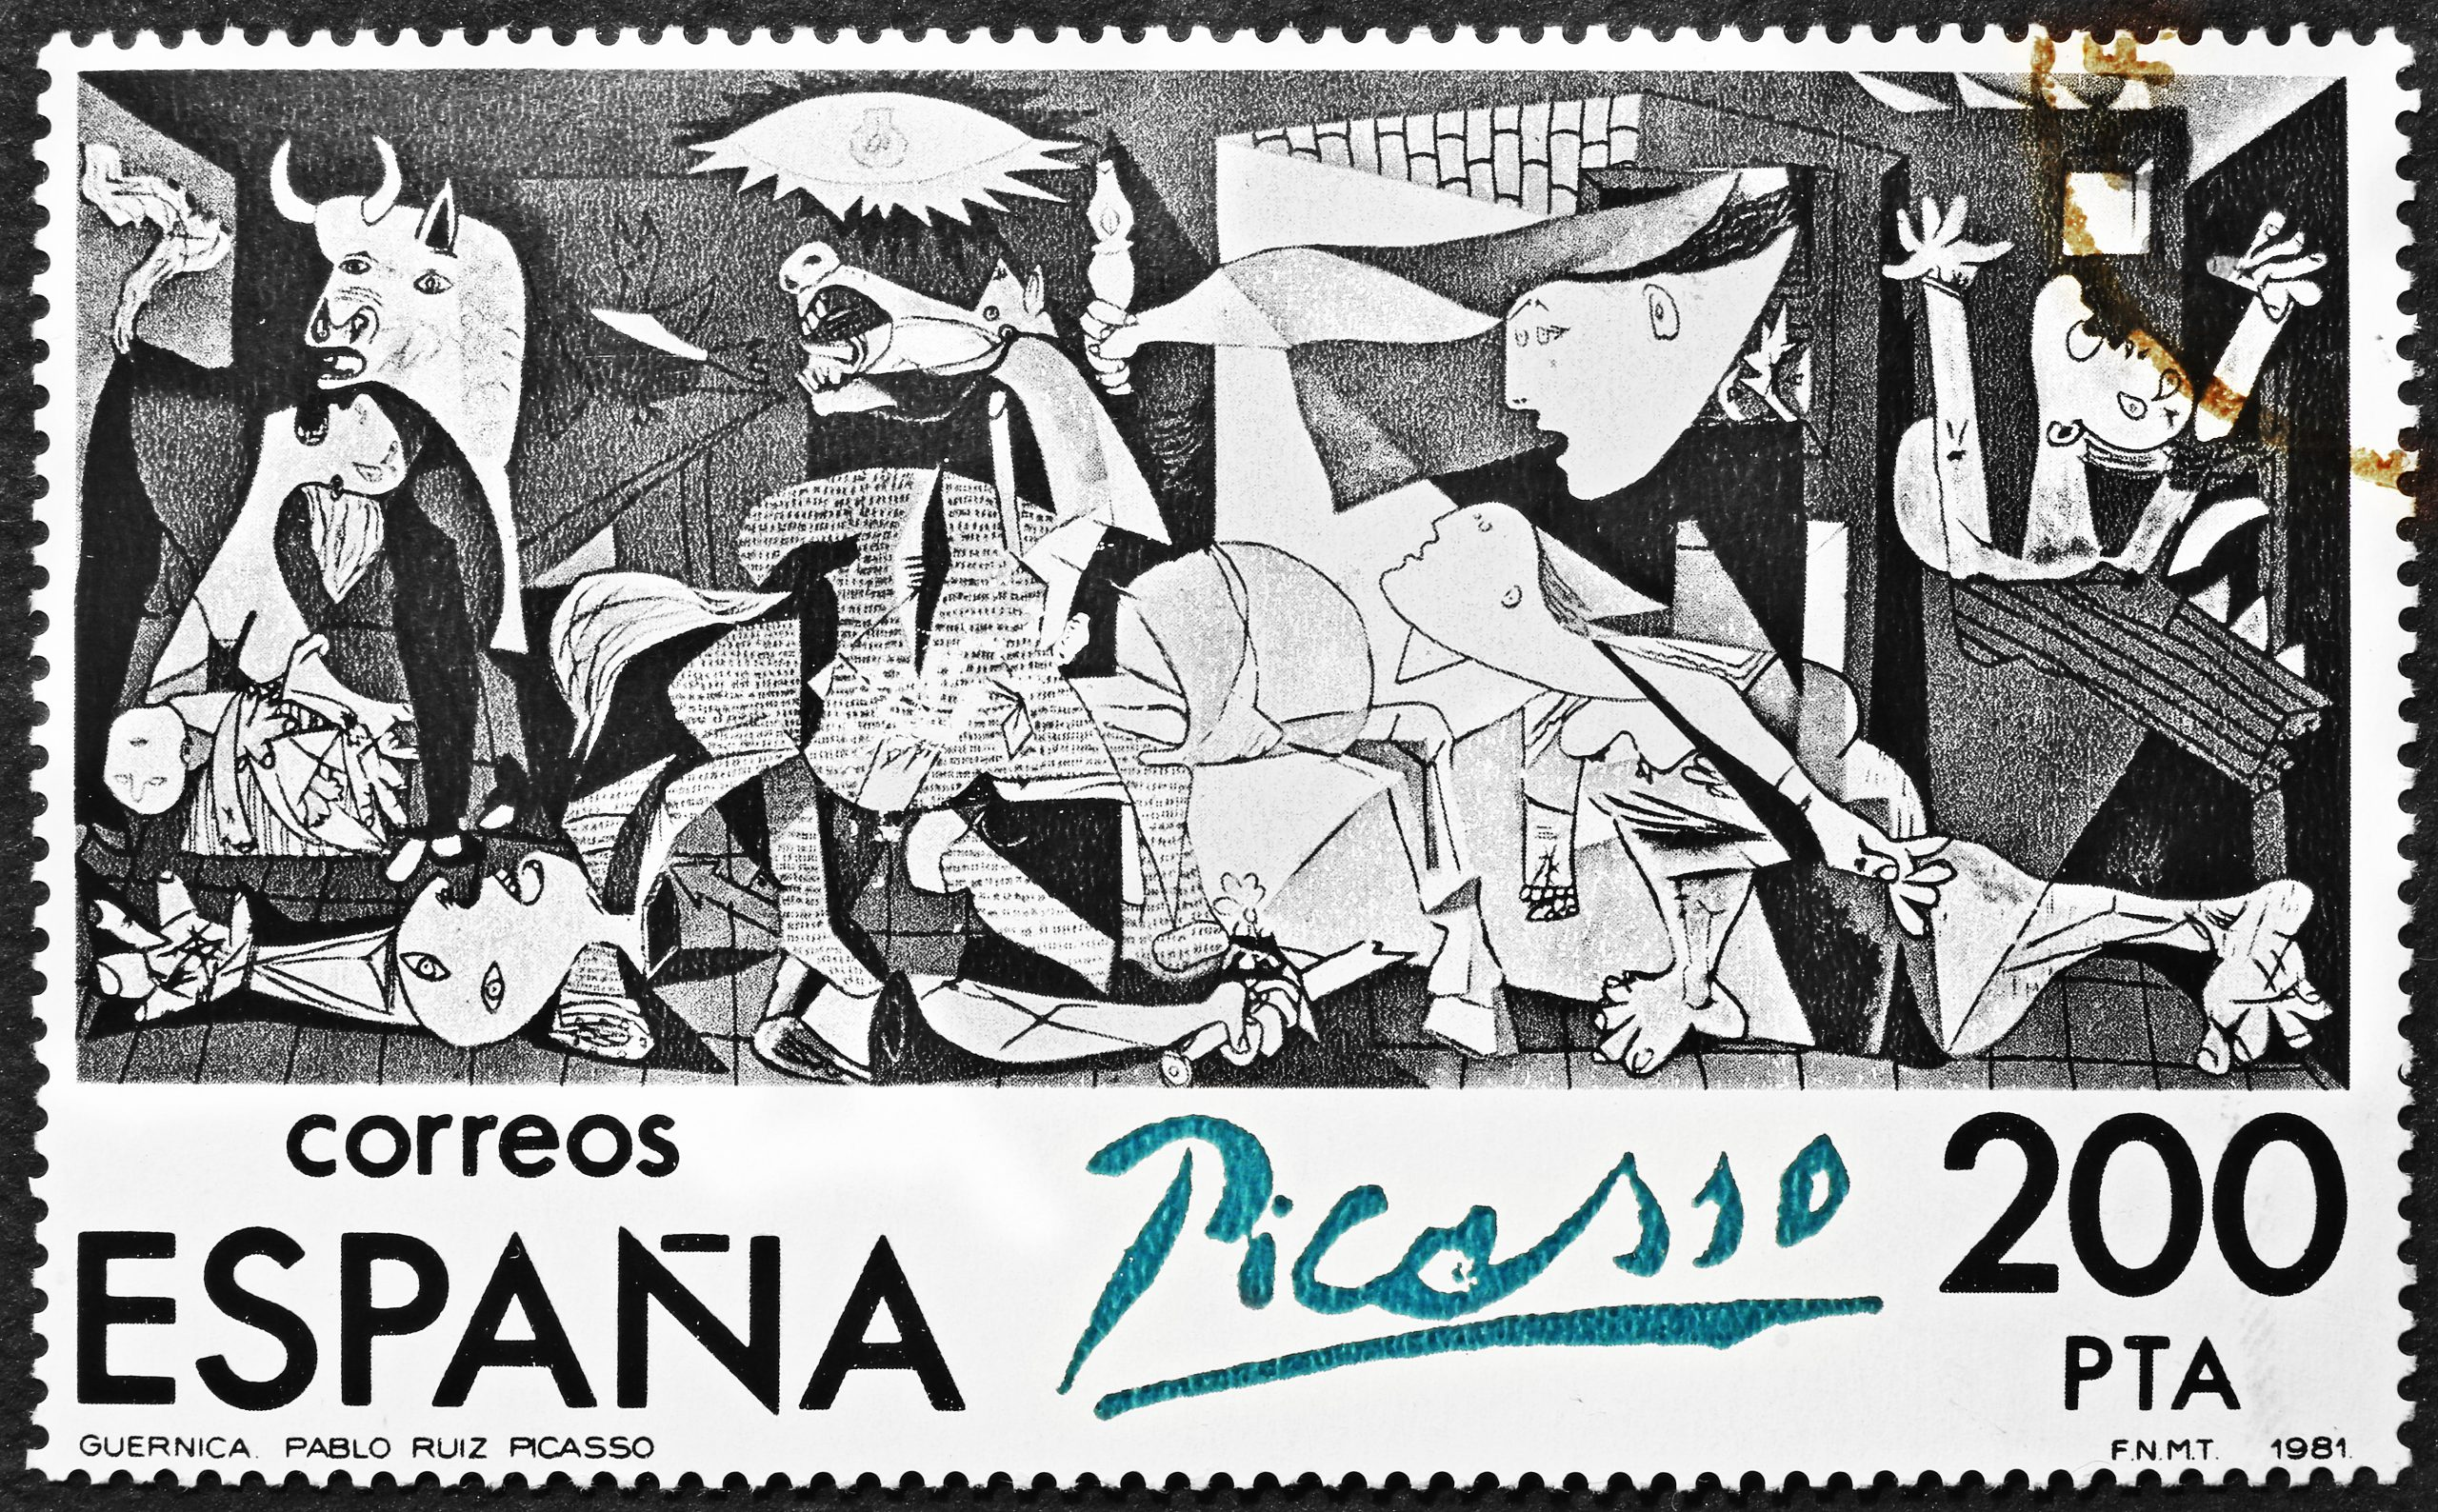 Image of the painting 'Guernica' (1937) by Pablo Picasso reproduced on a Spanish postage stamp